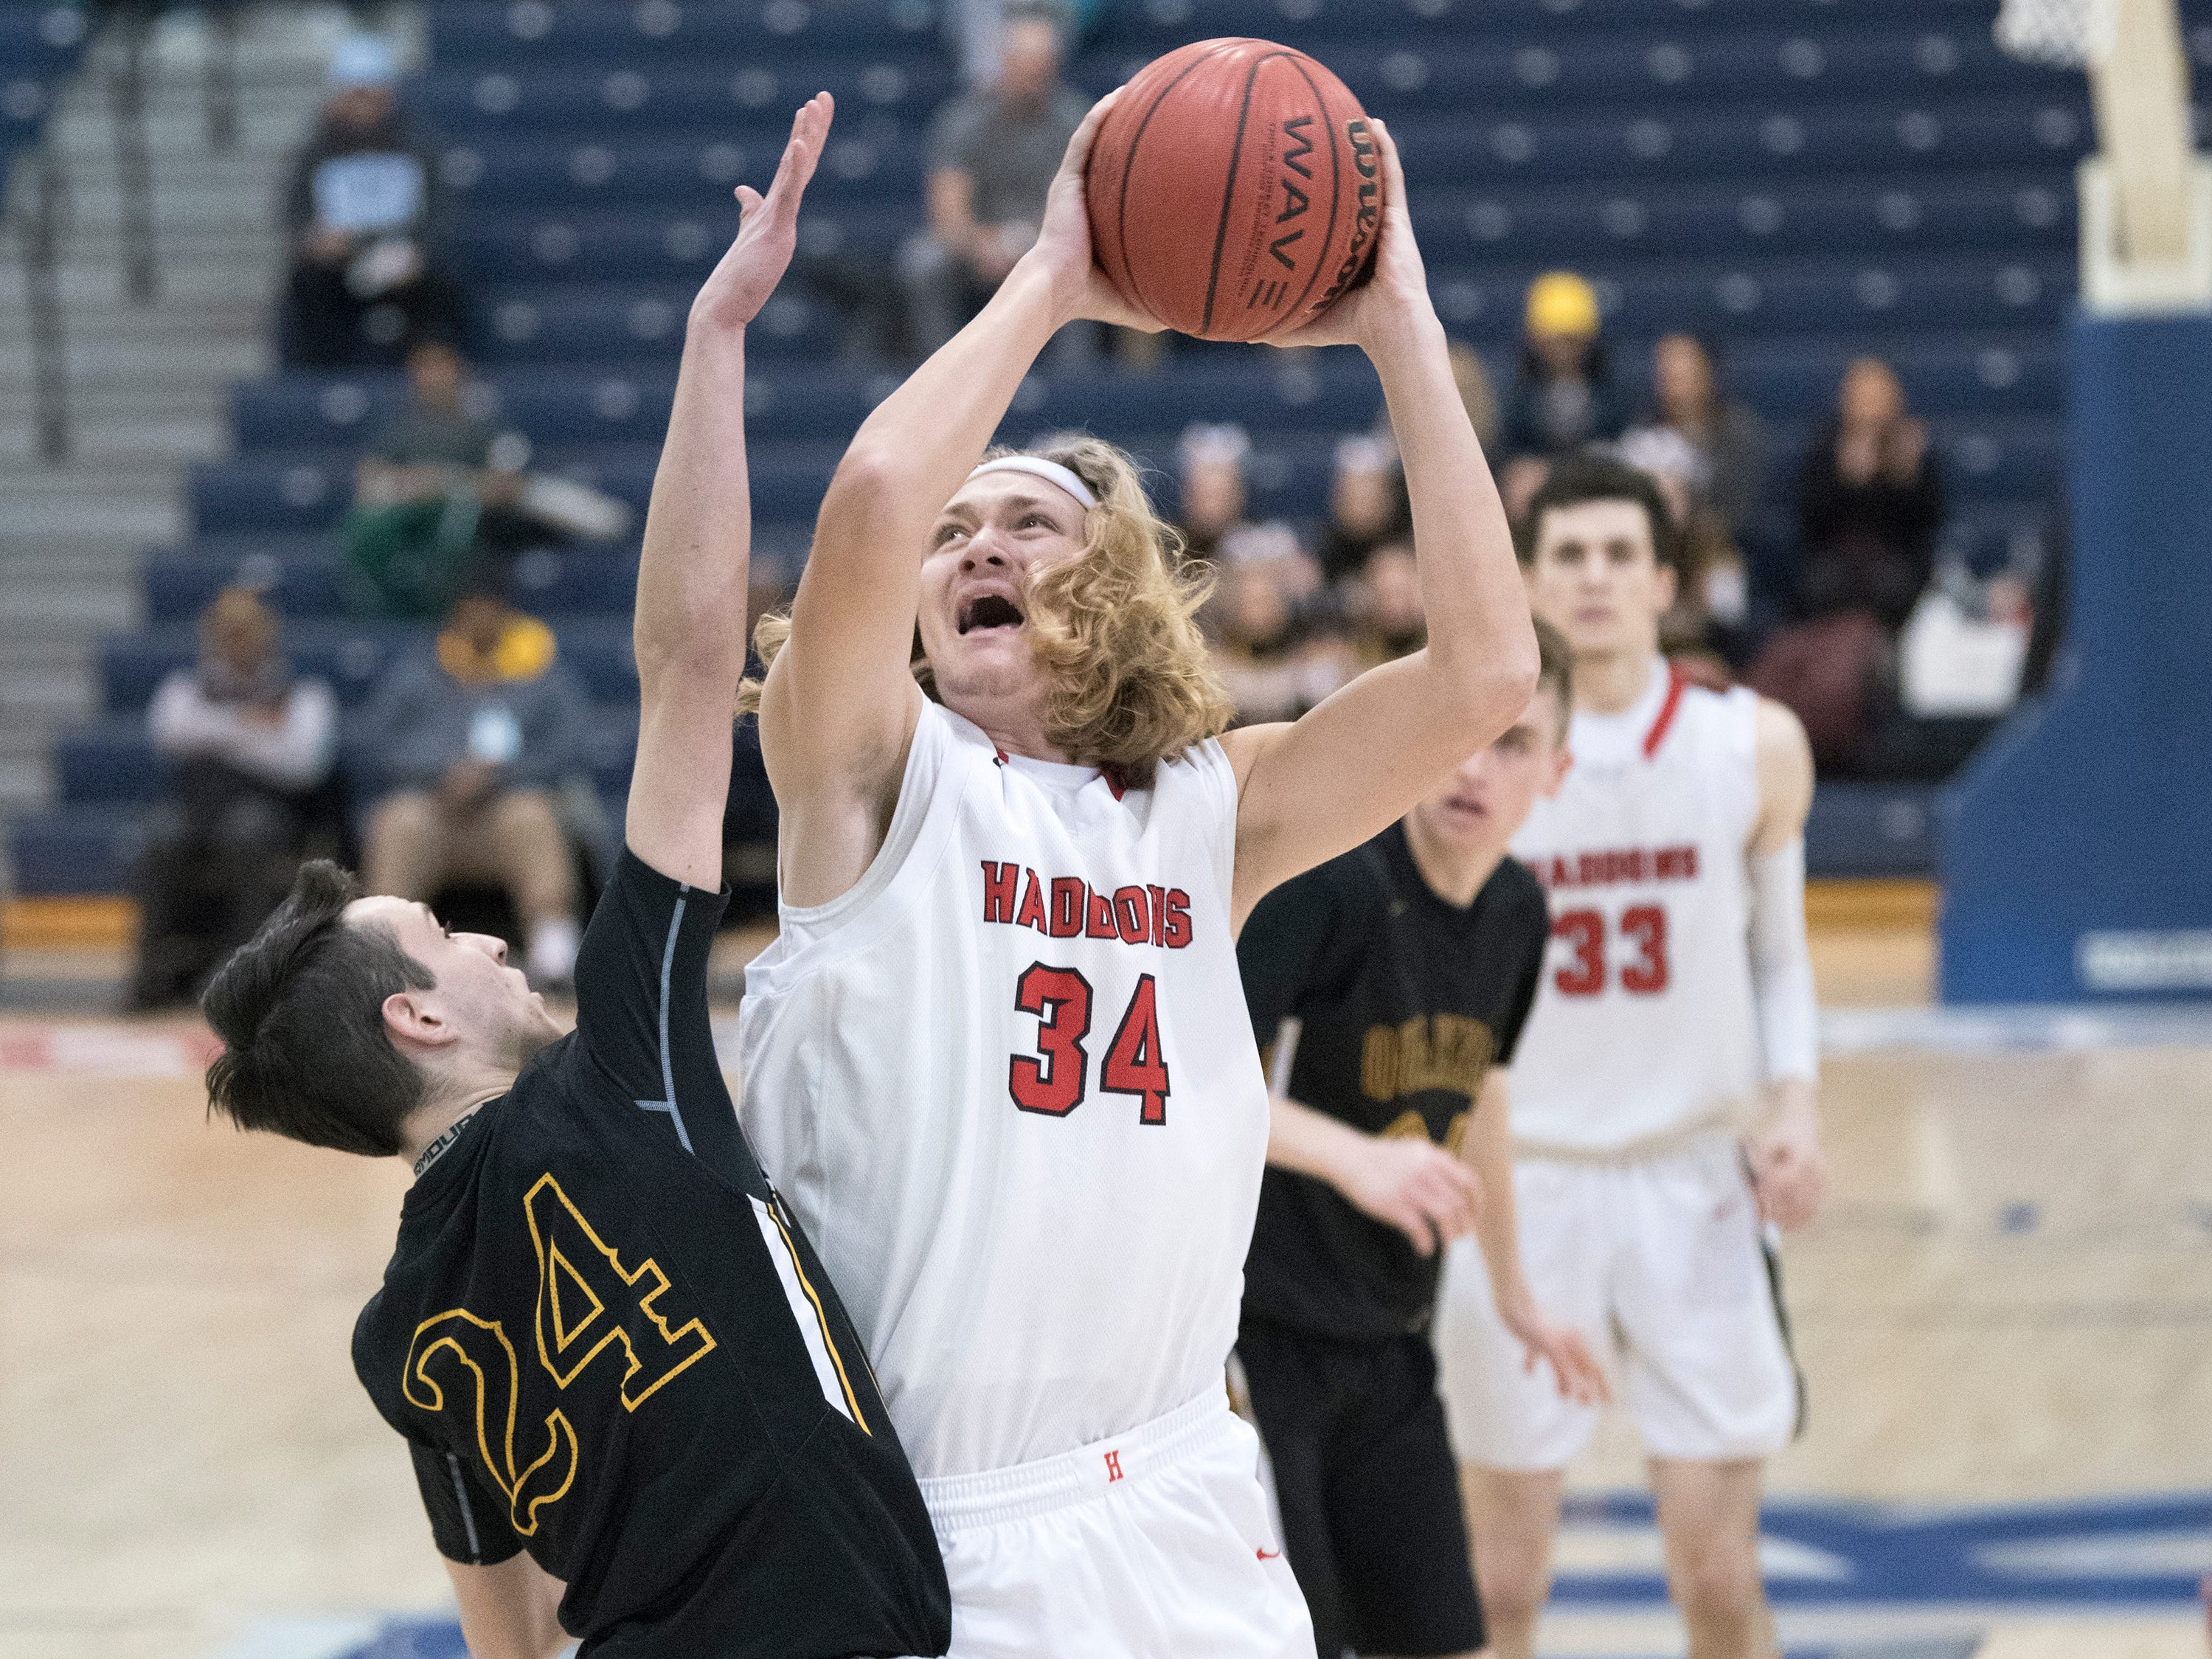 Haddonfield's Dylan Heine puts up a shot as Moorestown's Evan Francisco defends during the boys basketball Tournament of Champions quarterfinal game played at Toms River North High School on Wednesday, March 13, 2019.    Moorestown defeated Haddonfield, 60-59.